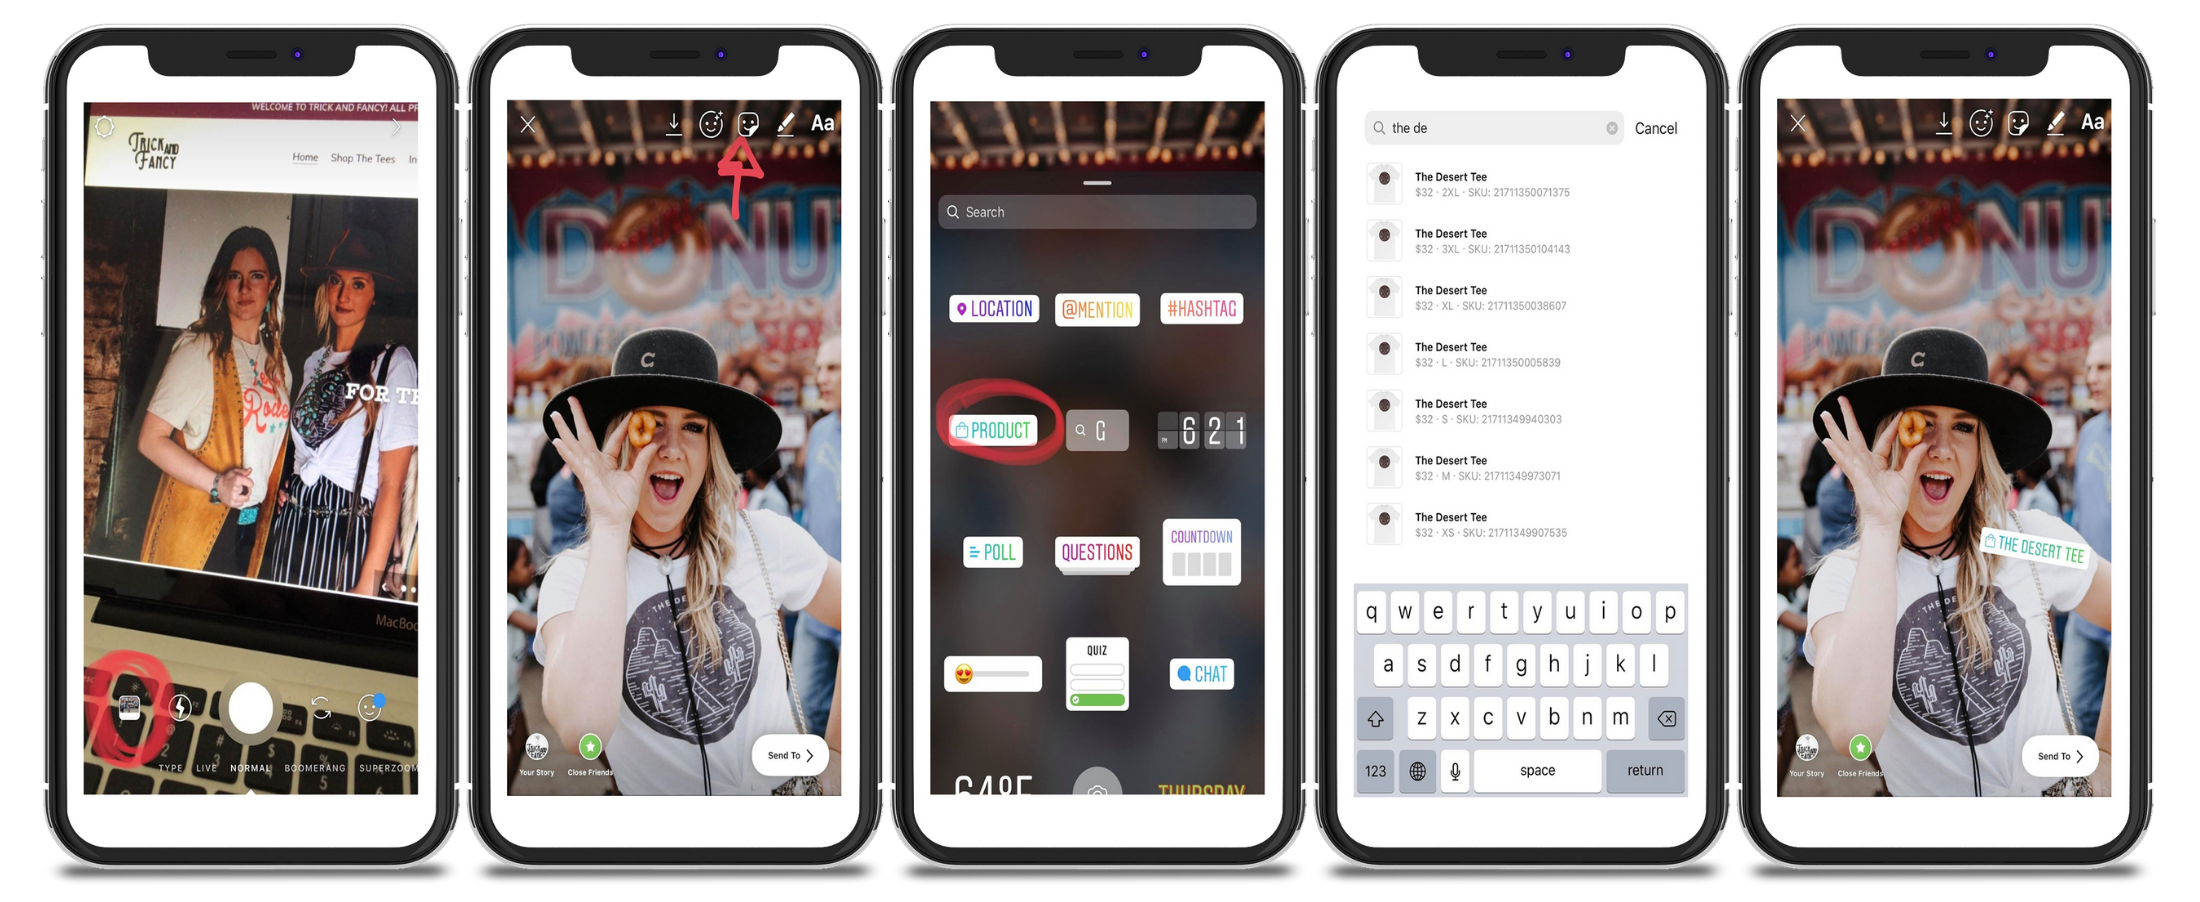 How to tag products in Instagram stories